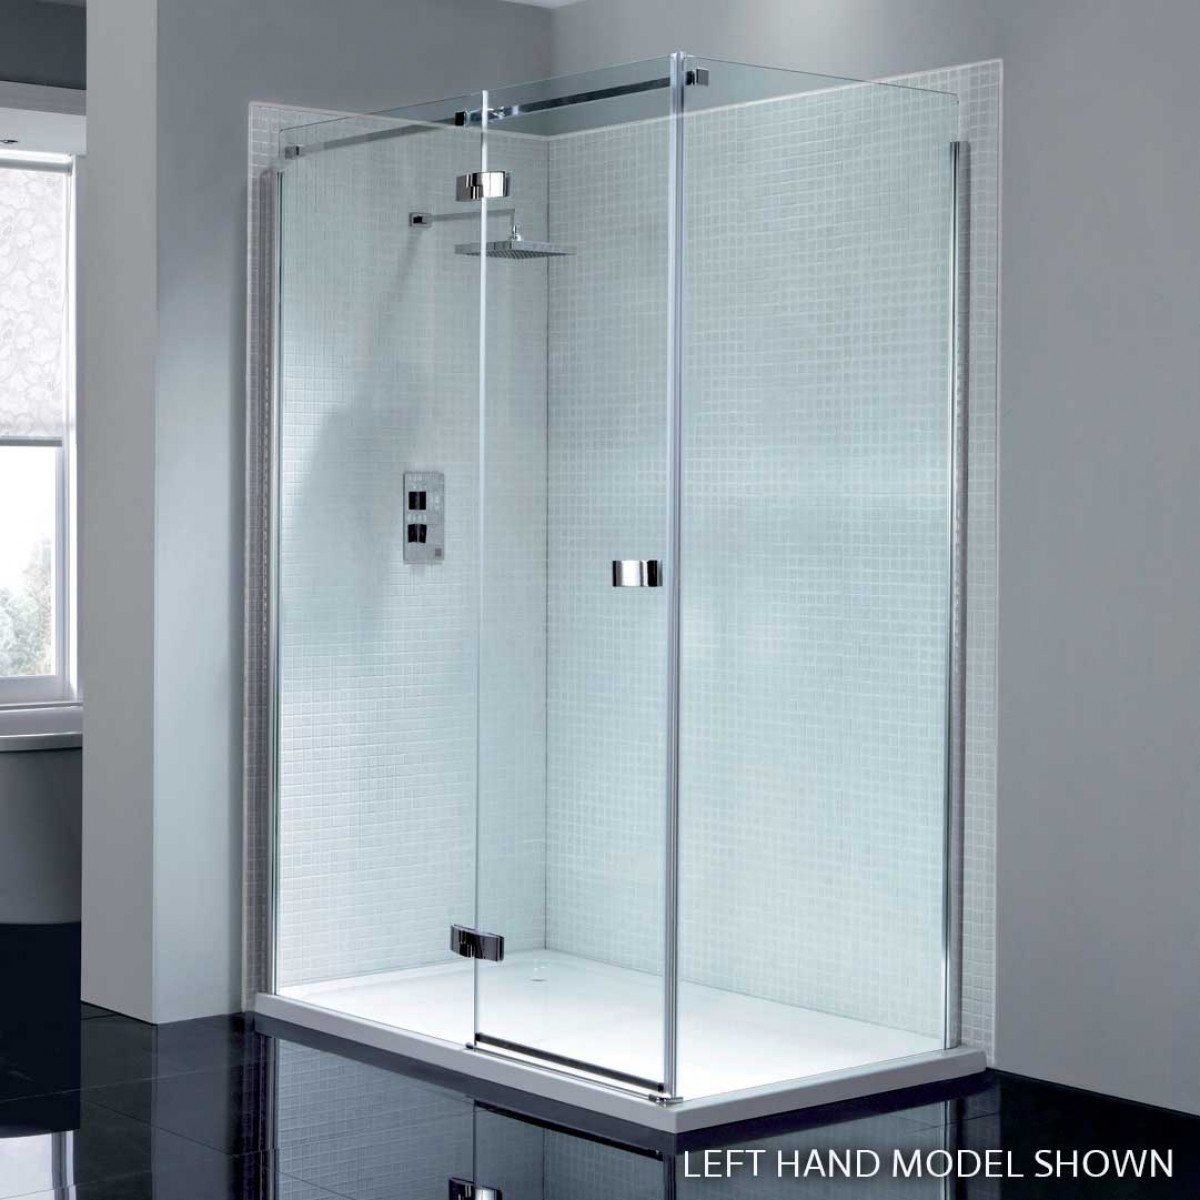 April Prestige2 Frameless 1200mm Hinge Shower Door with In-line ...